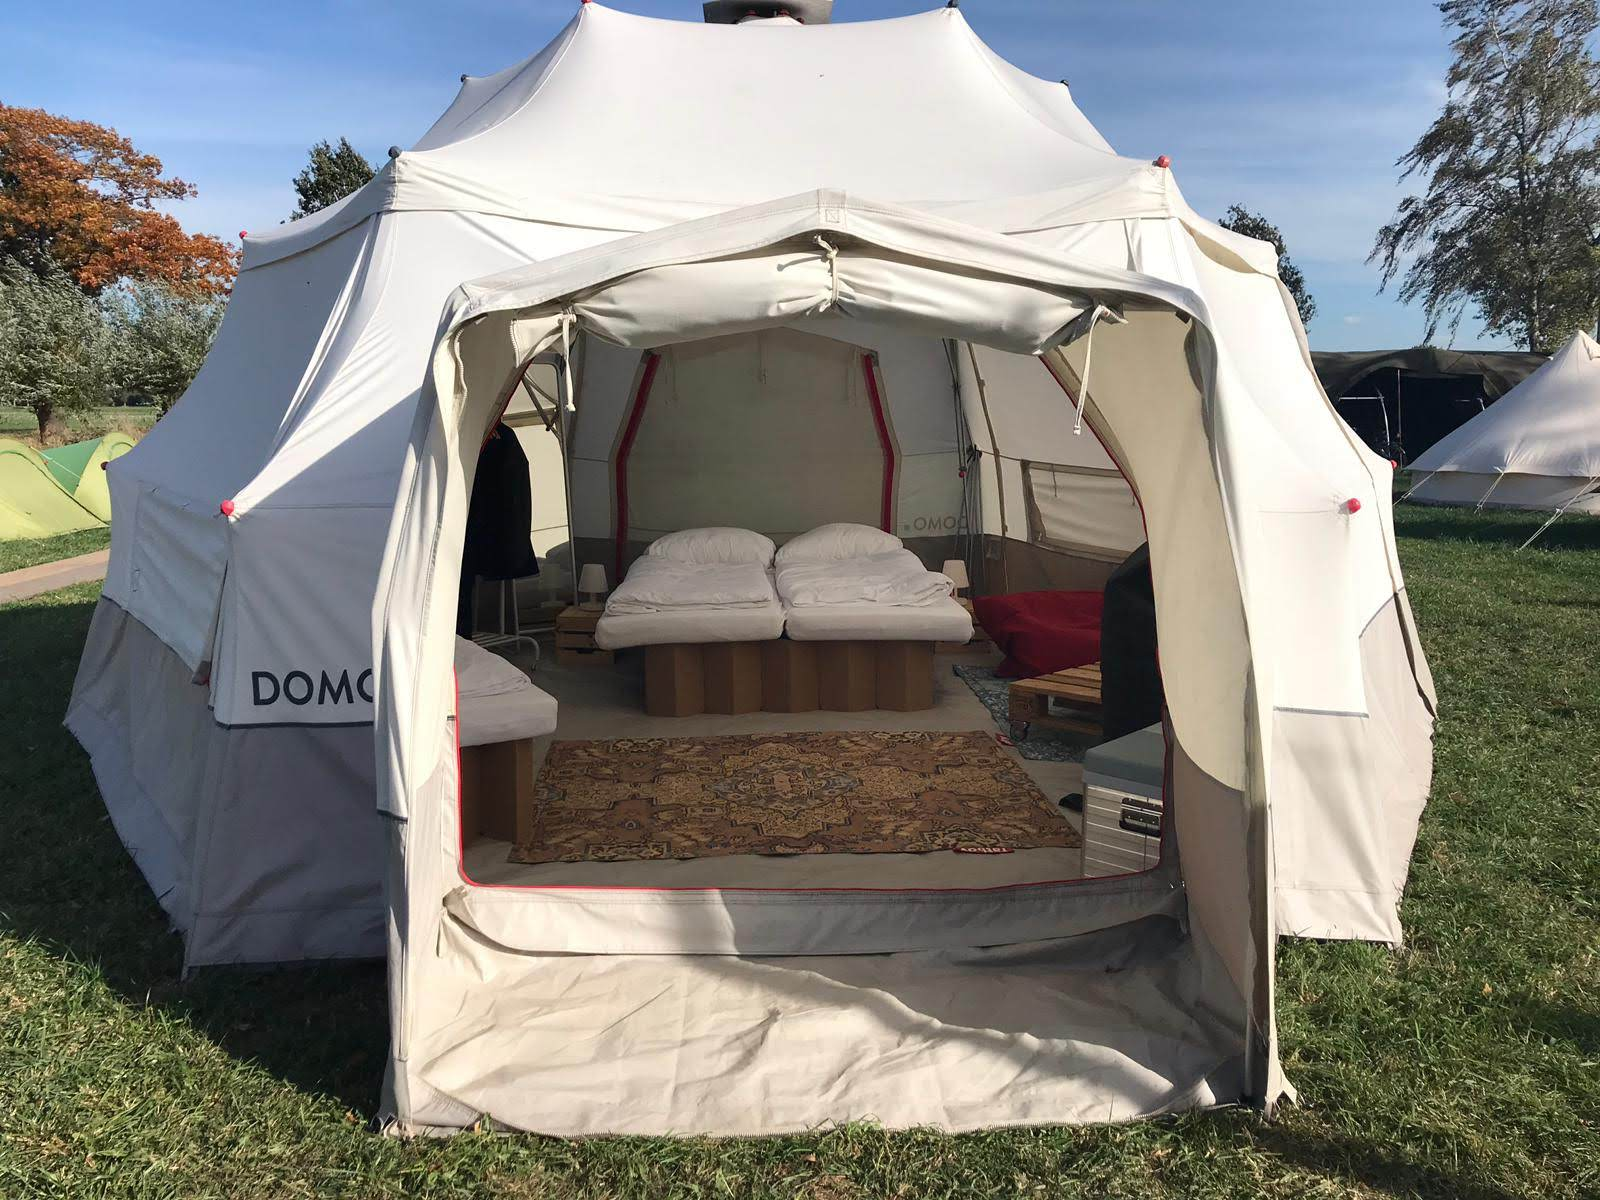 Domo - Glampspiration - Campsolutions - Glamping